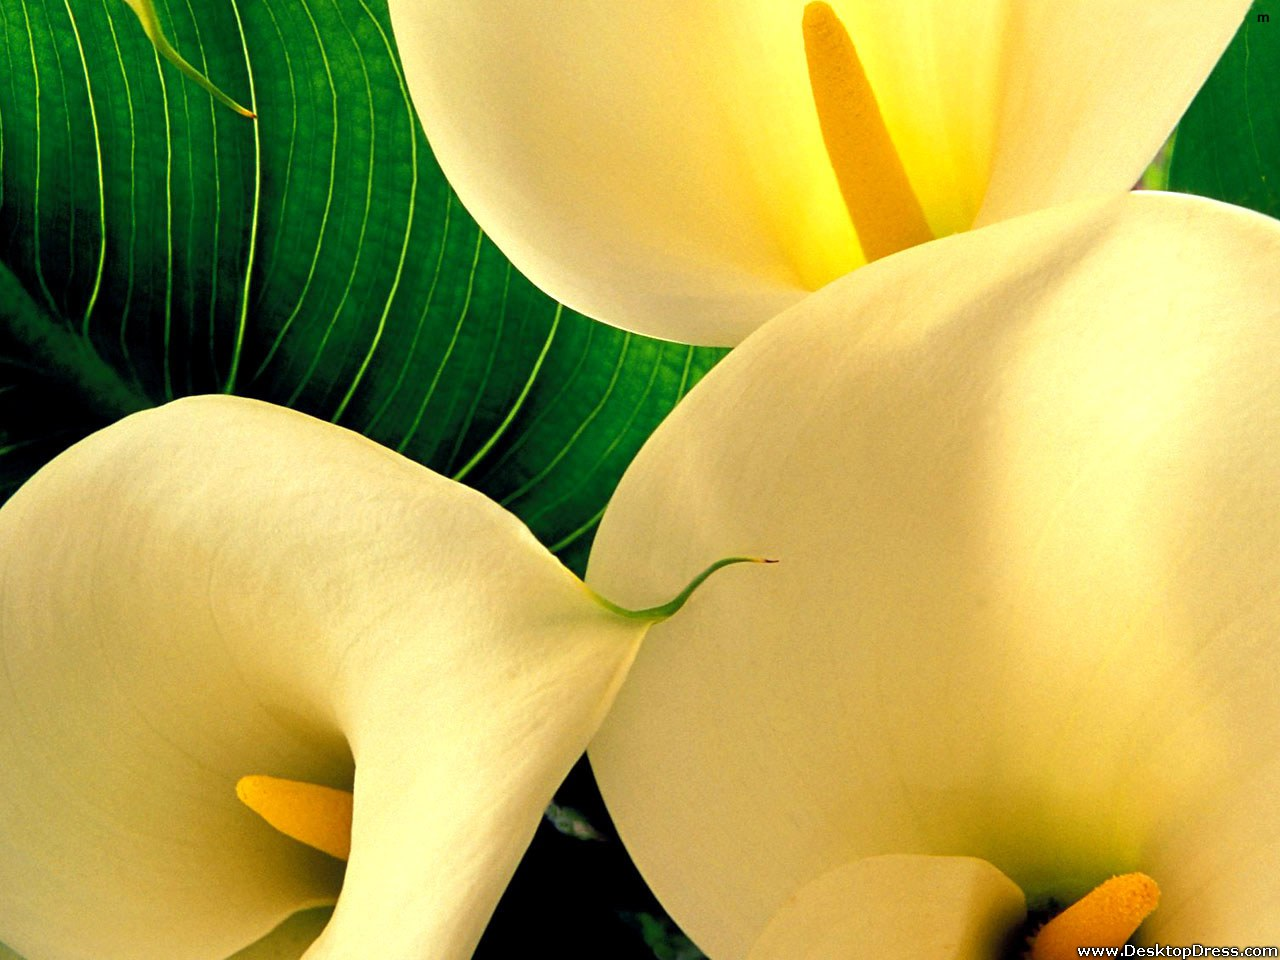 Desktop Wallpapers Flowers Backgrounds Yellow Big Lily Flower 1280x960